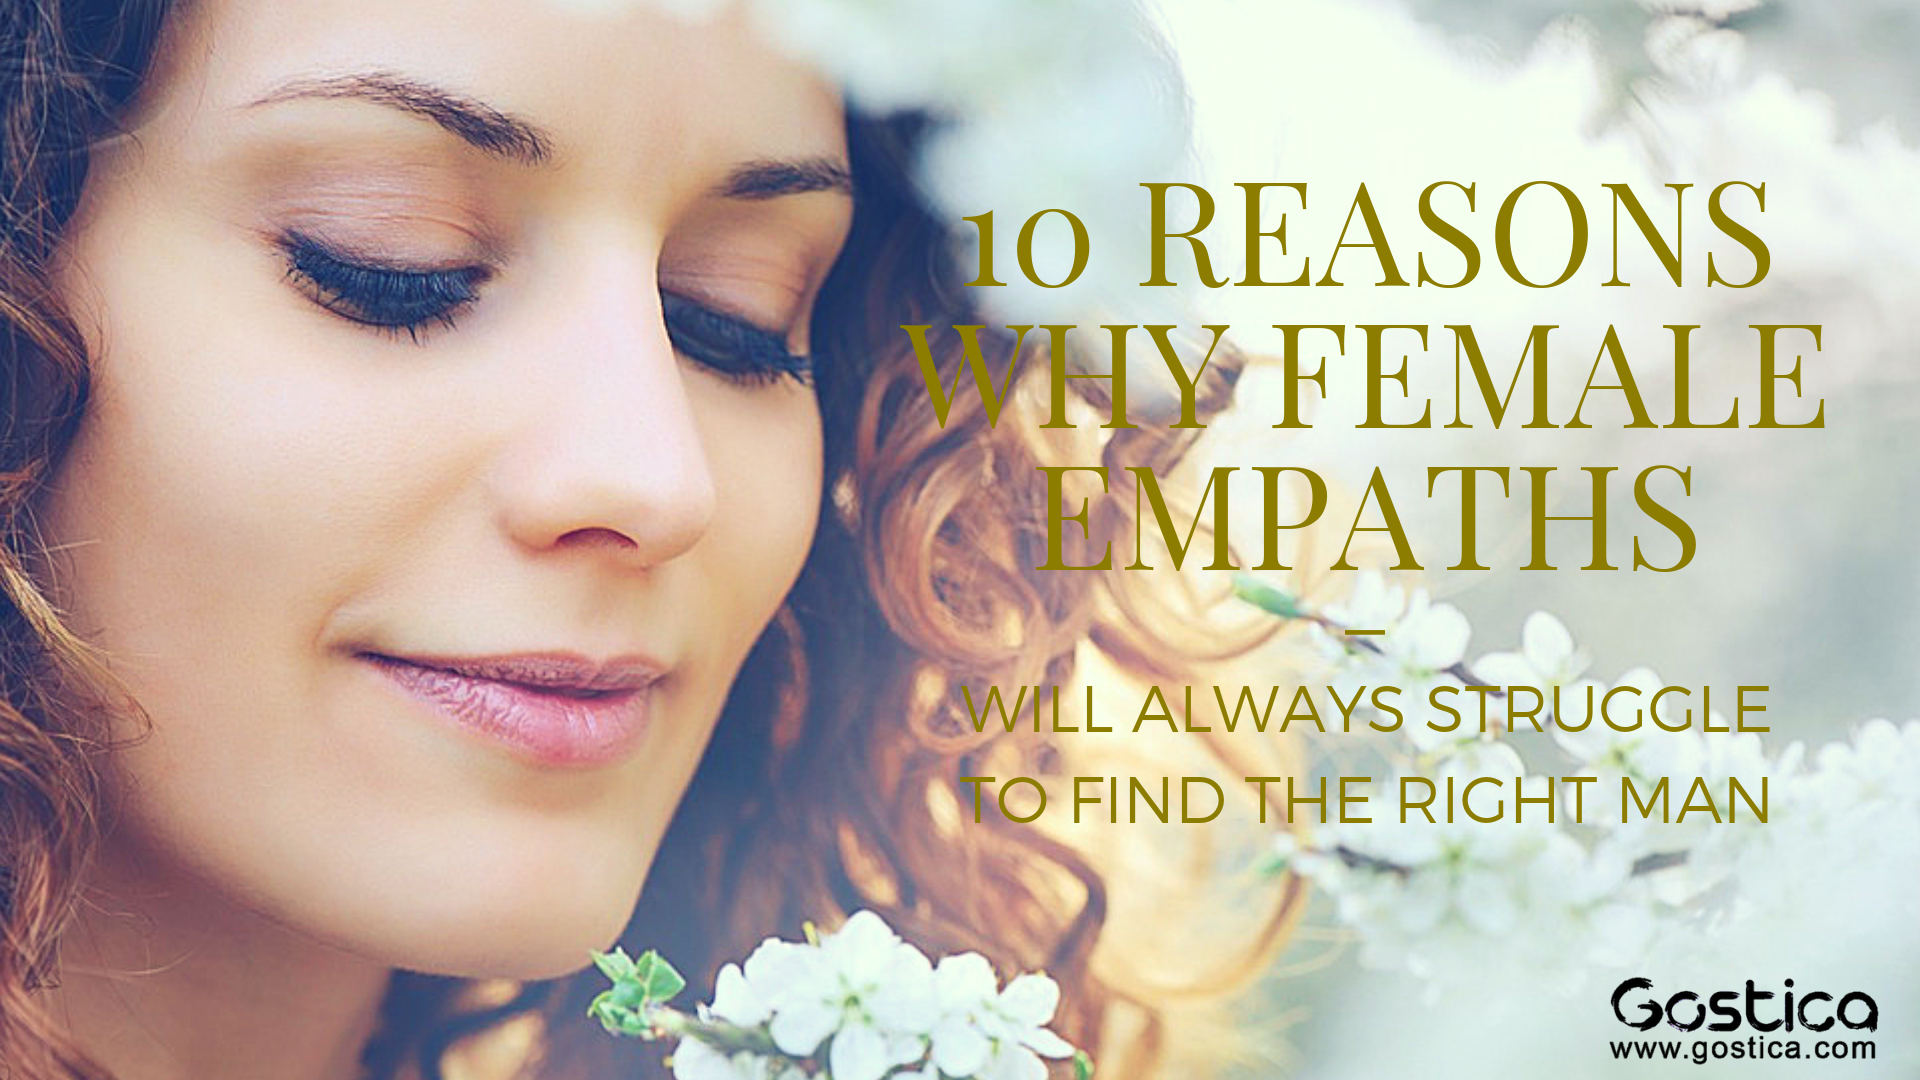 empaths, empath, female empaths